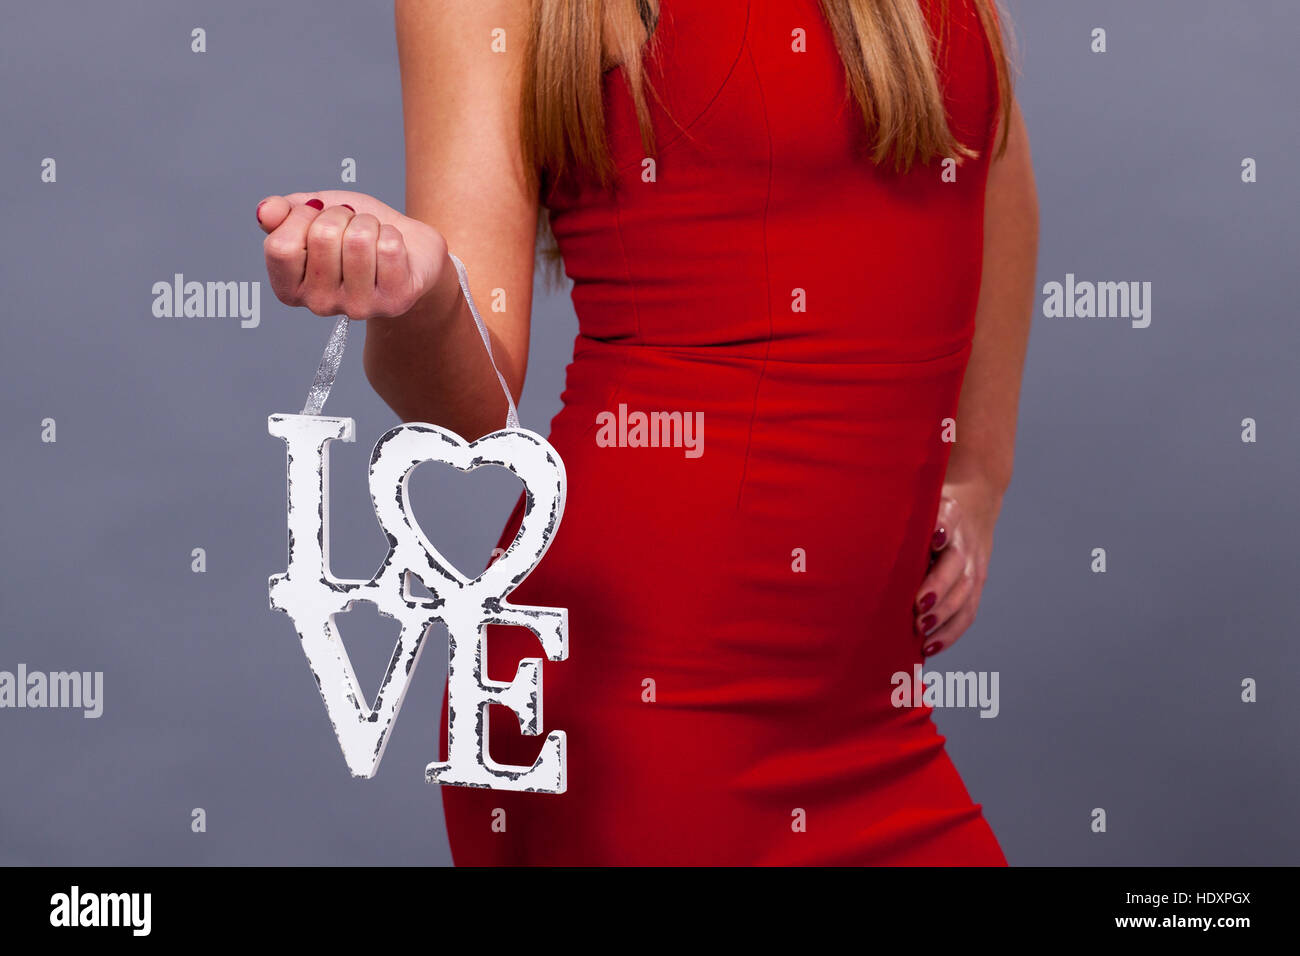 Valentines Day. Woman wearing red dress holding sign love symbol on grey background - Stock Image